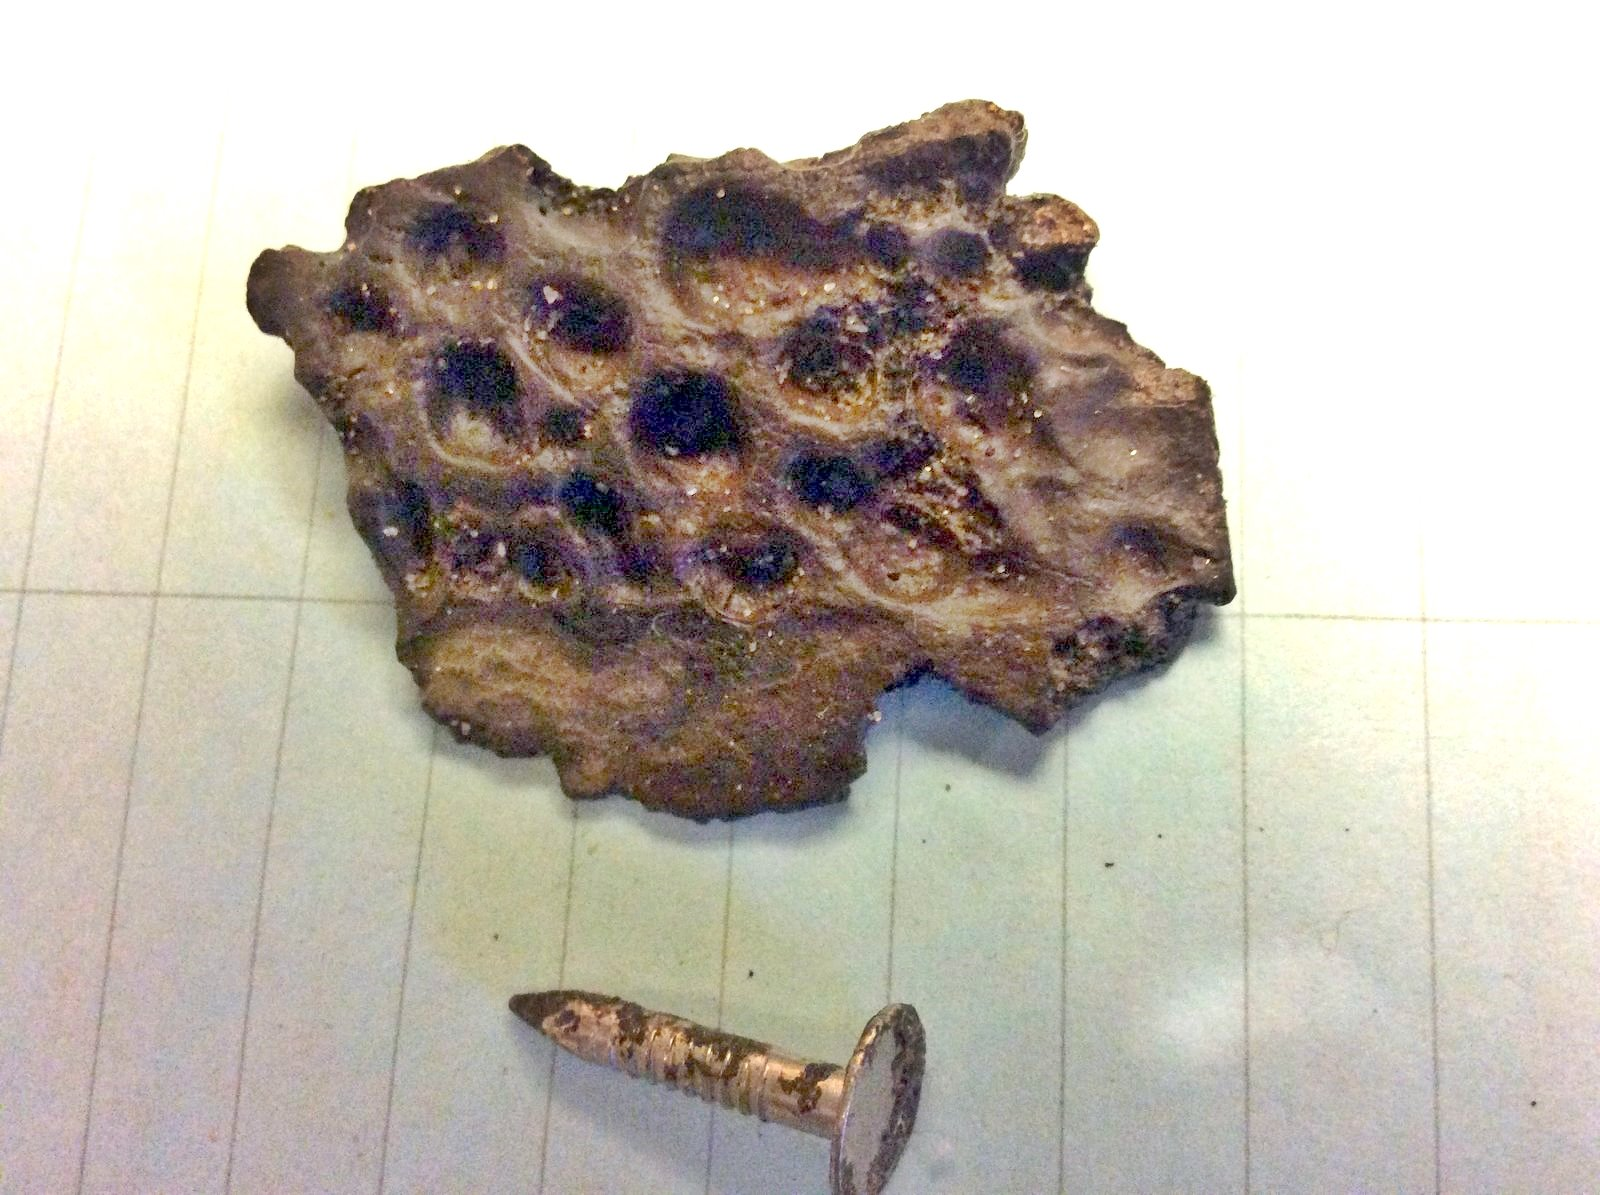 Upper Cretaceous Crocodile Scute from Big Brook, New Jersey